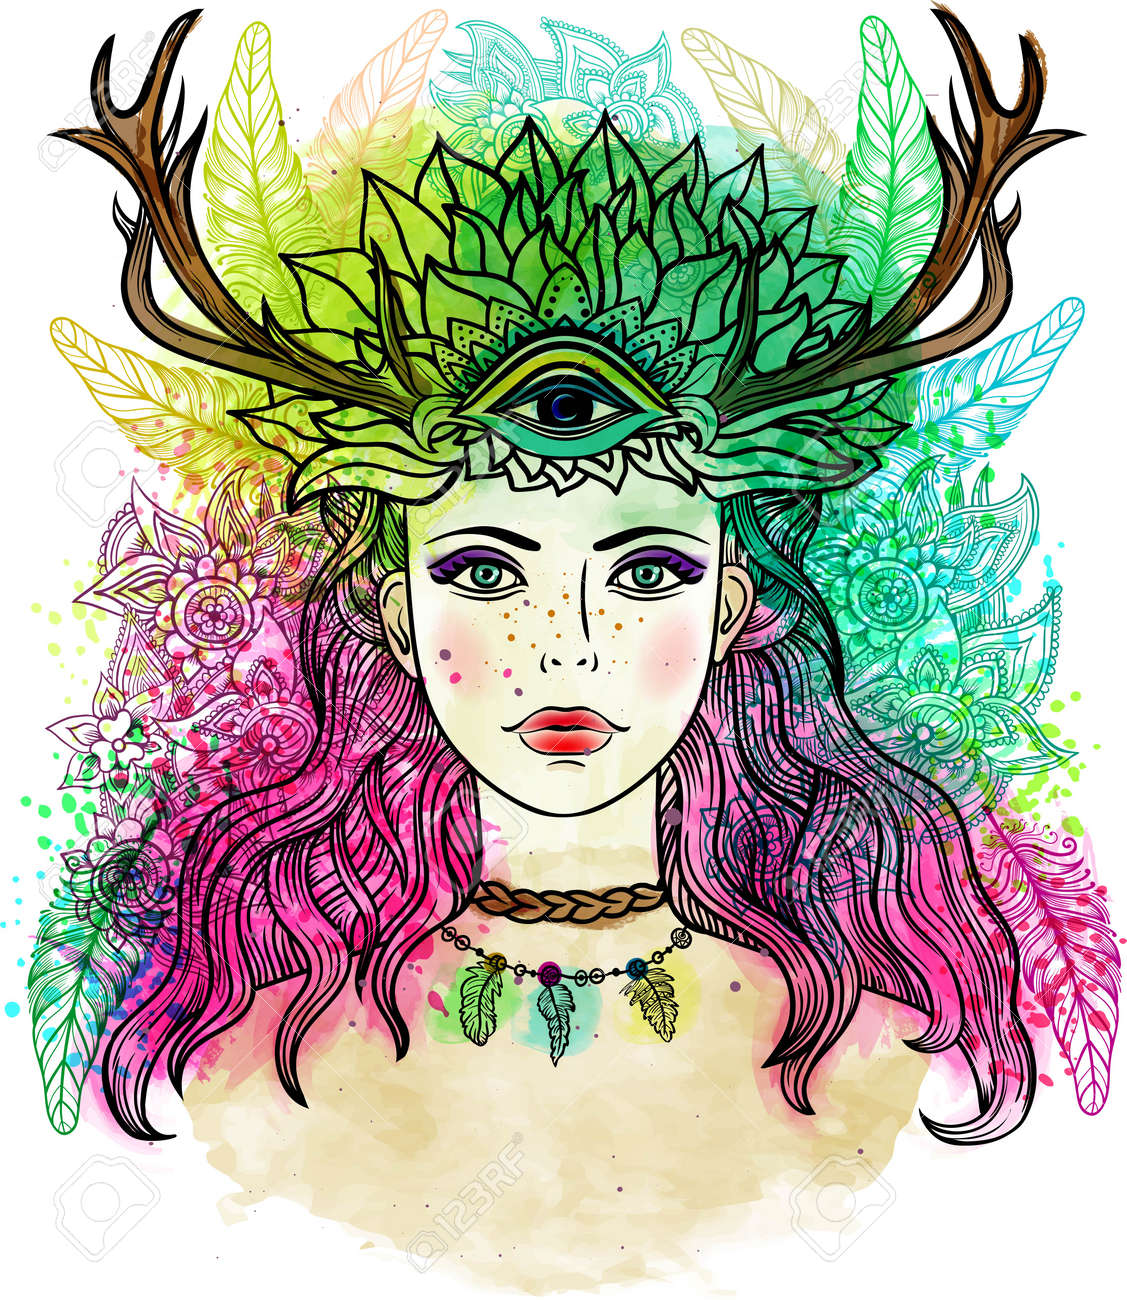 Female shaman with third eye, Feathers, horns . Alchemy, religion, spirituality, occultism, tattoo line zentangle hipster art, coloring books. Watercolor, chalk pastels pencils texture vector - 58753850